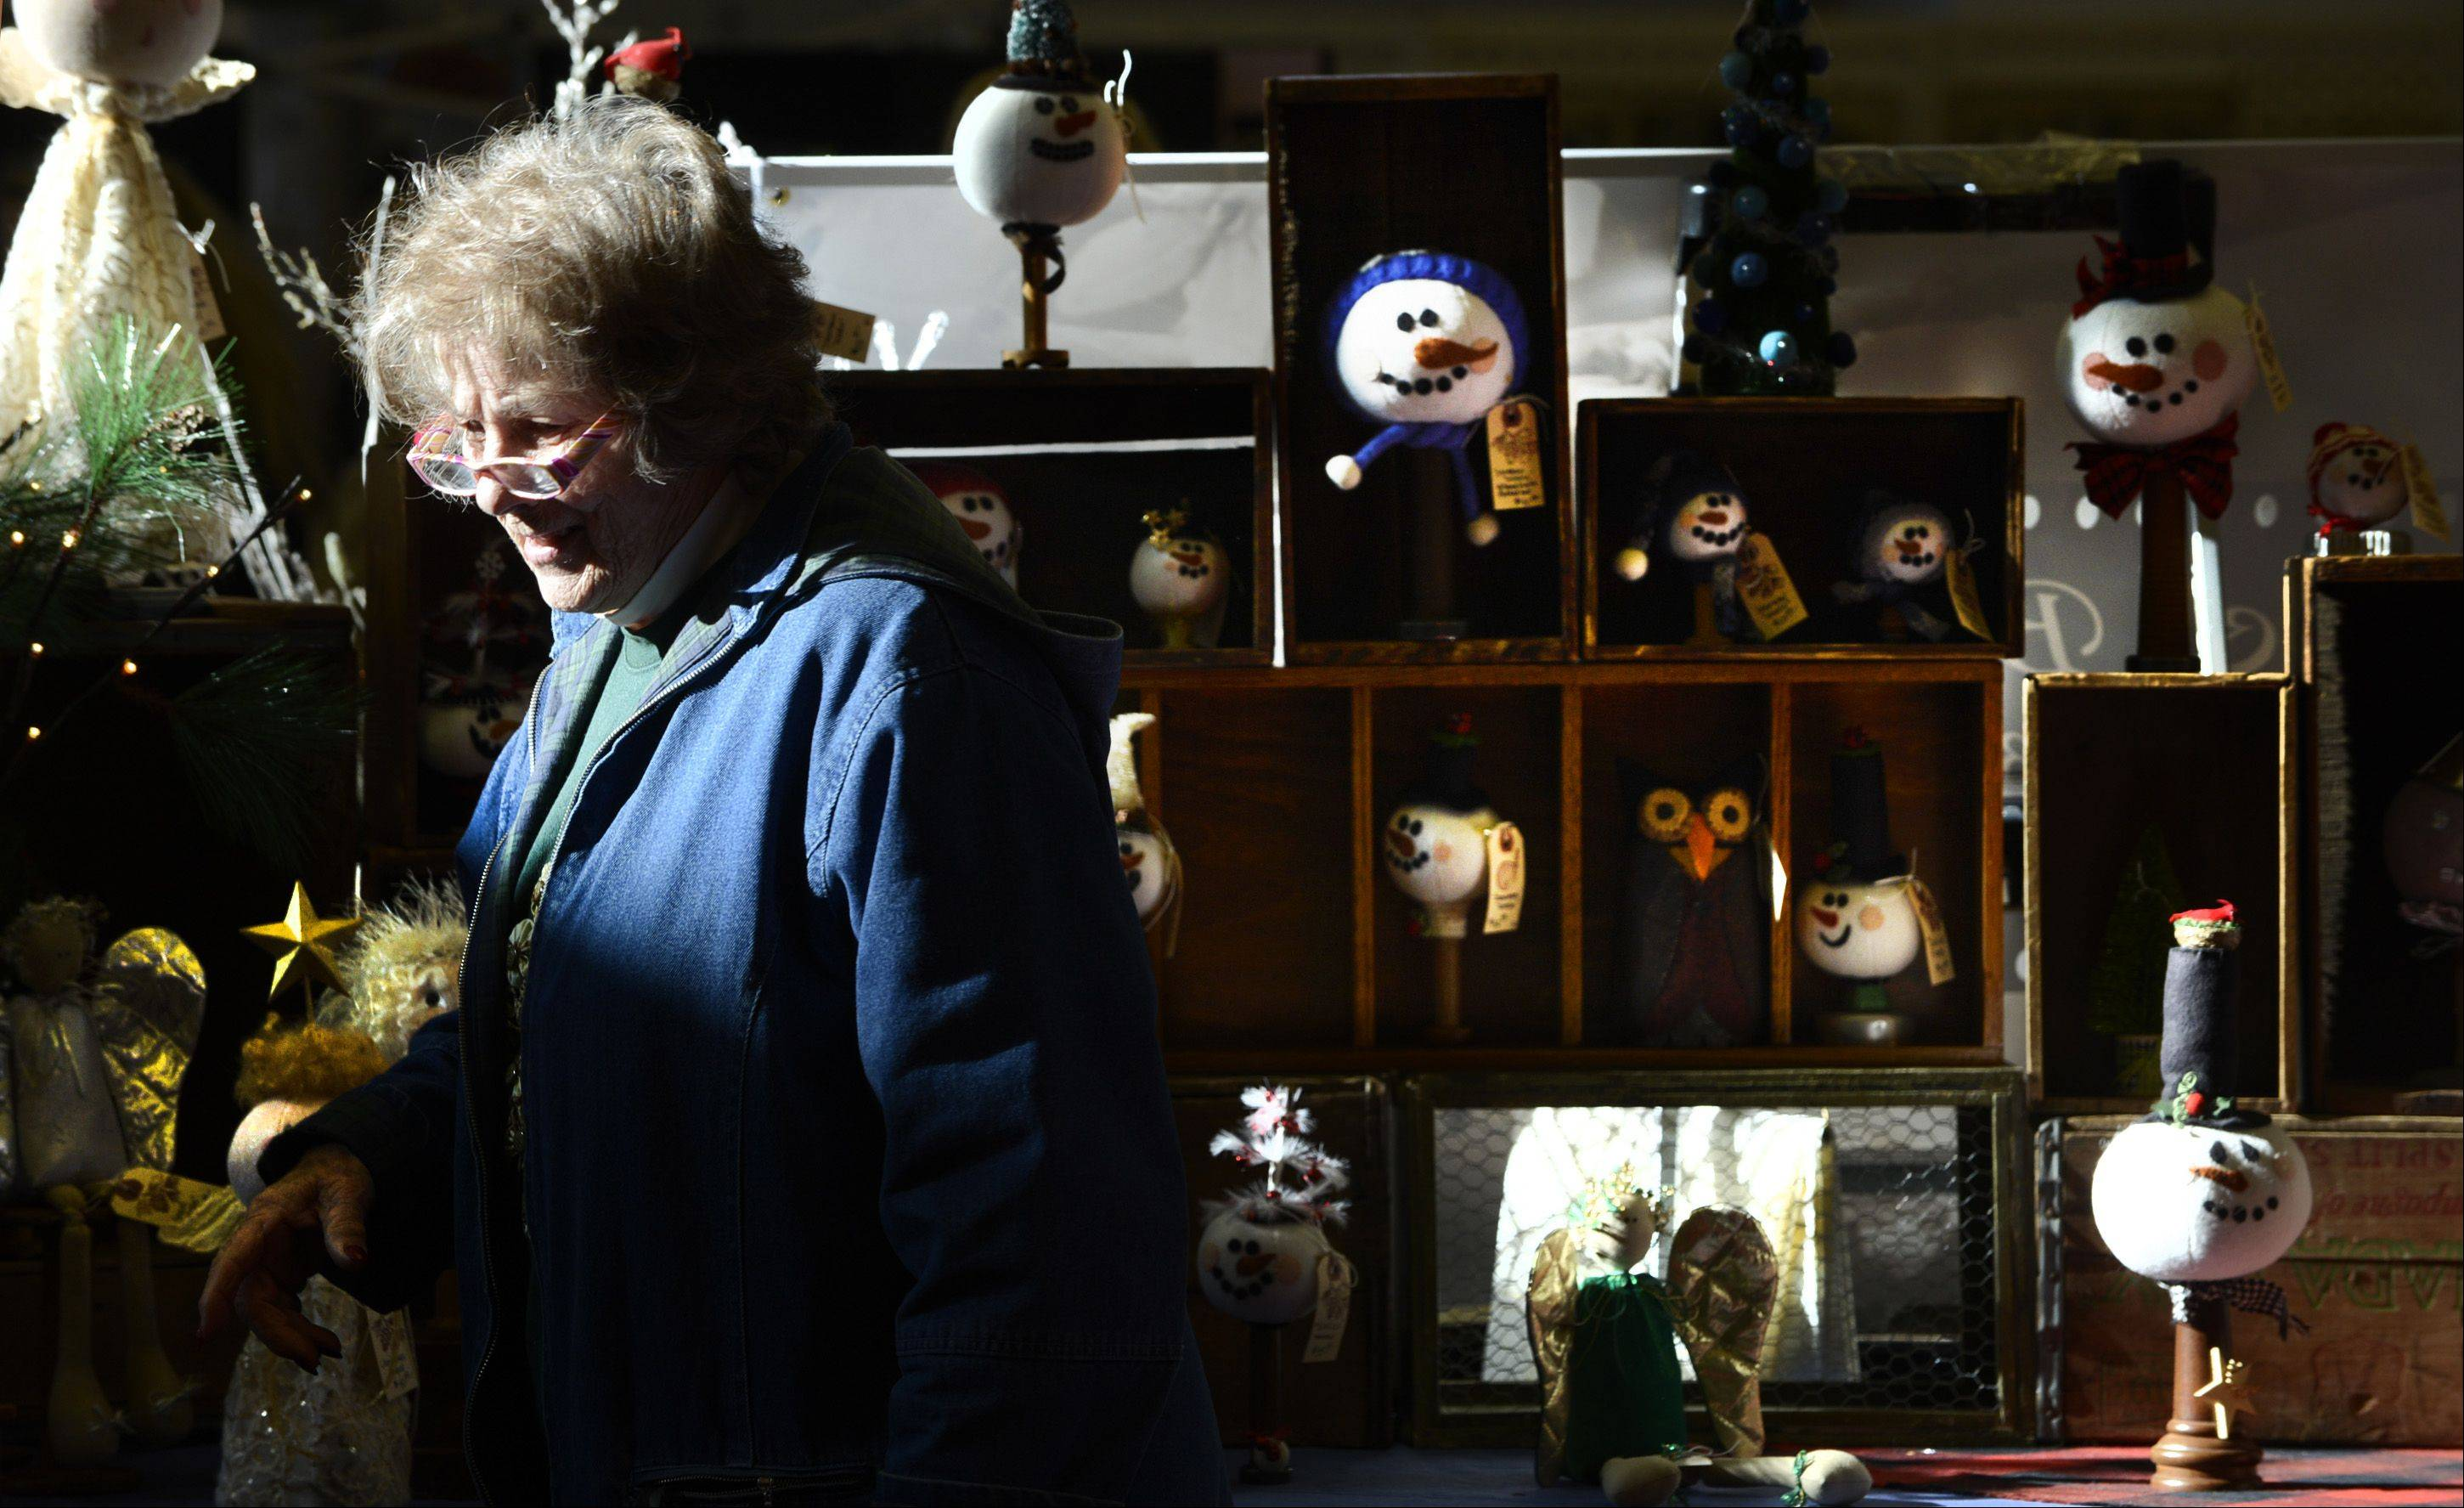 Elaine Hicks, of Elk Grove Village, browses the merchandise of Kathie Roller's booth Sunday at the Christmas on the Fox Arts and Crafts Show at the Kane County Fairgrounds in St. Charles.